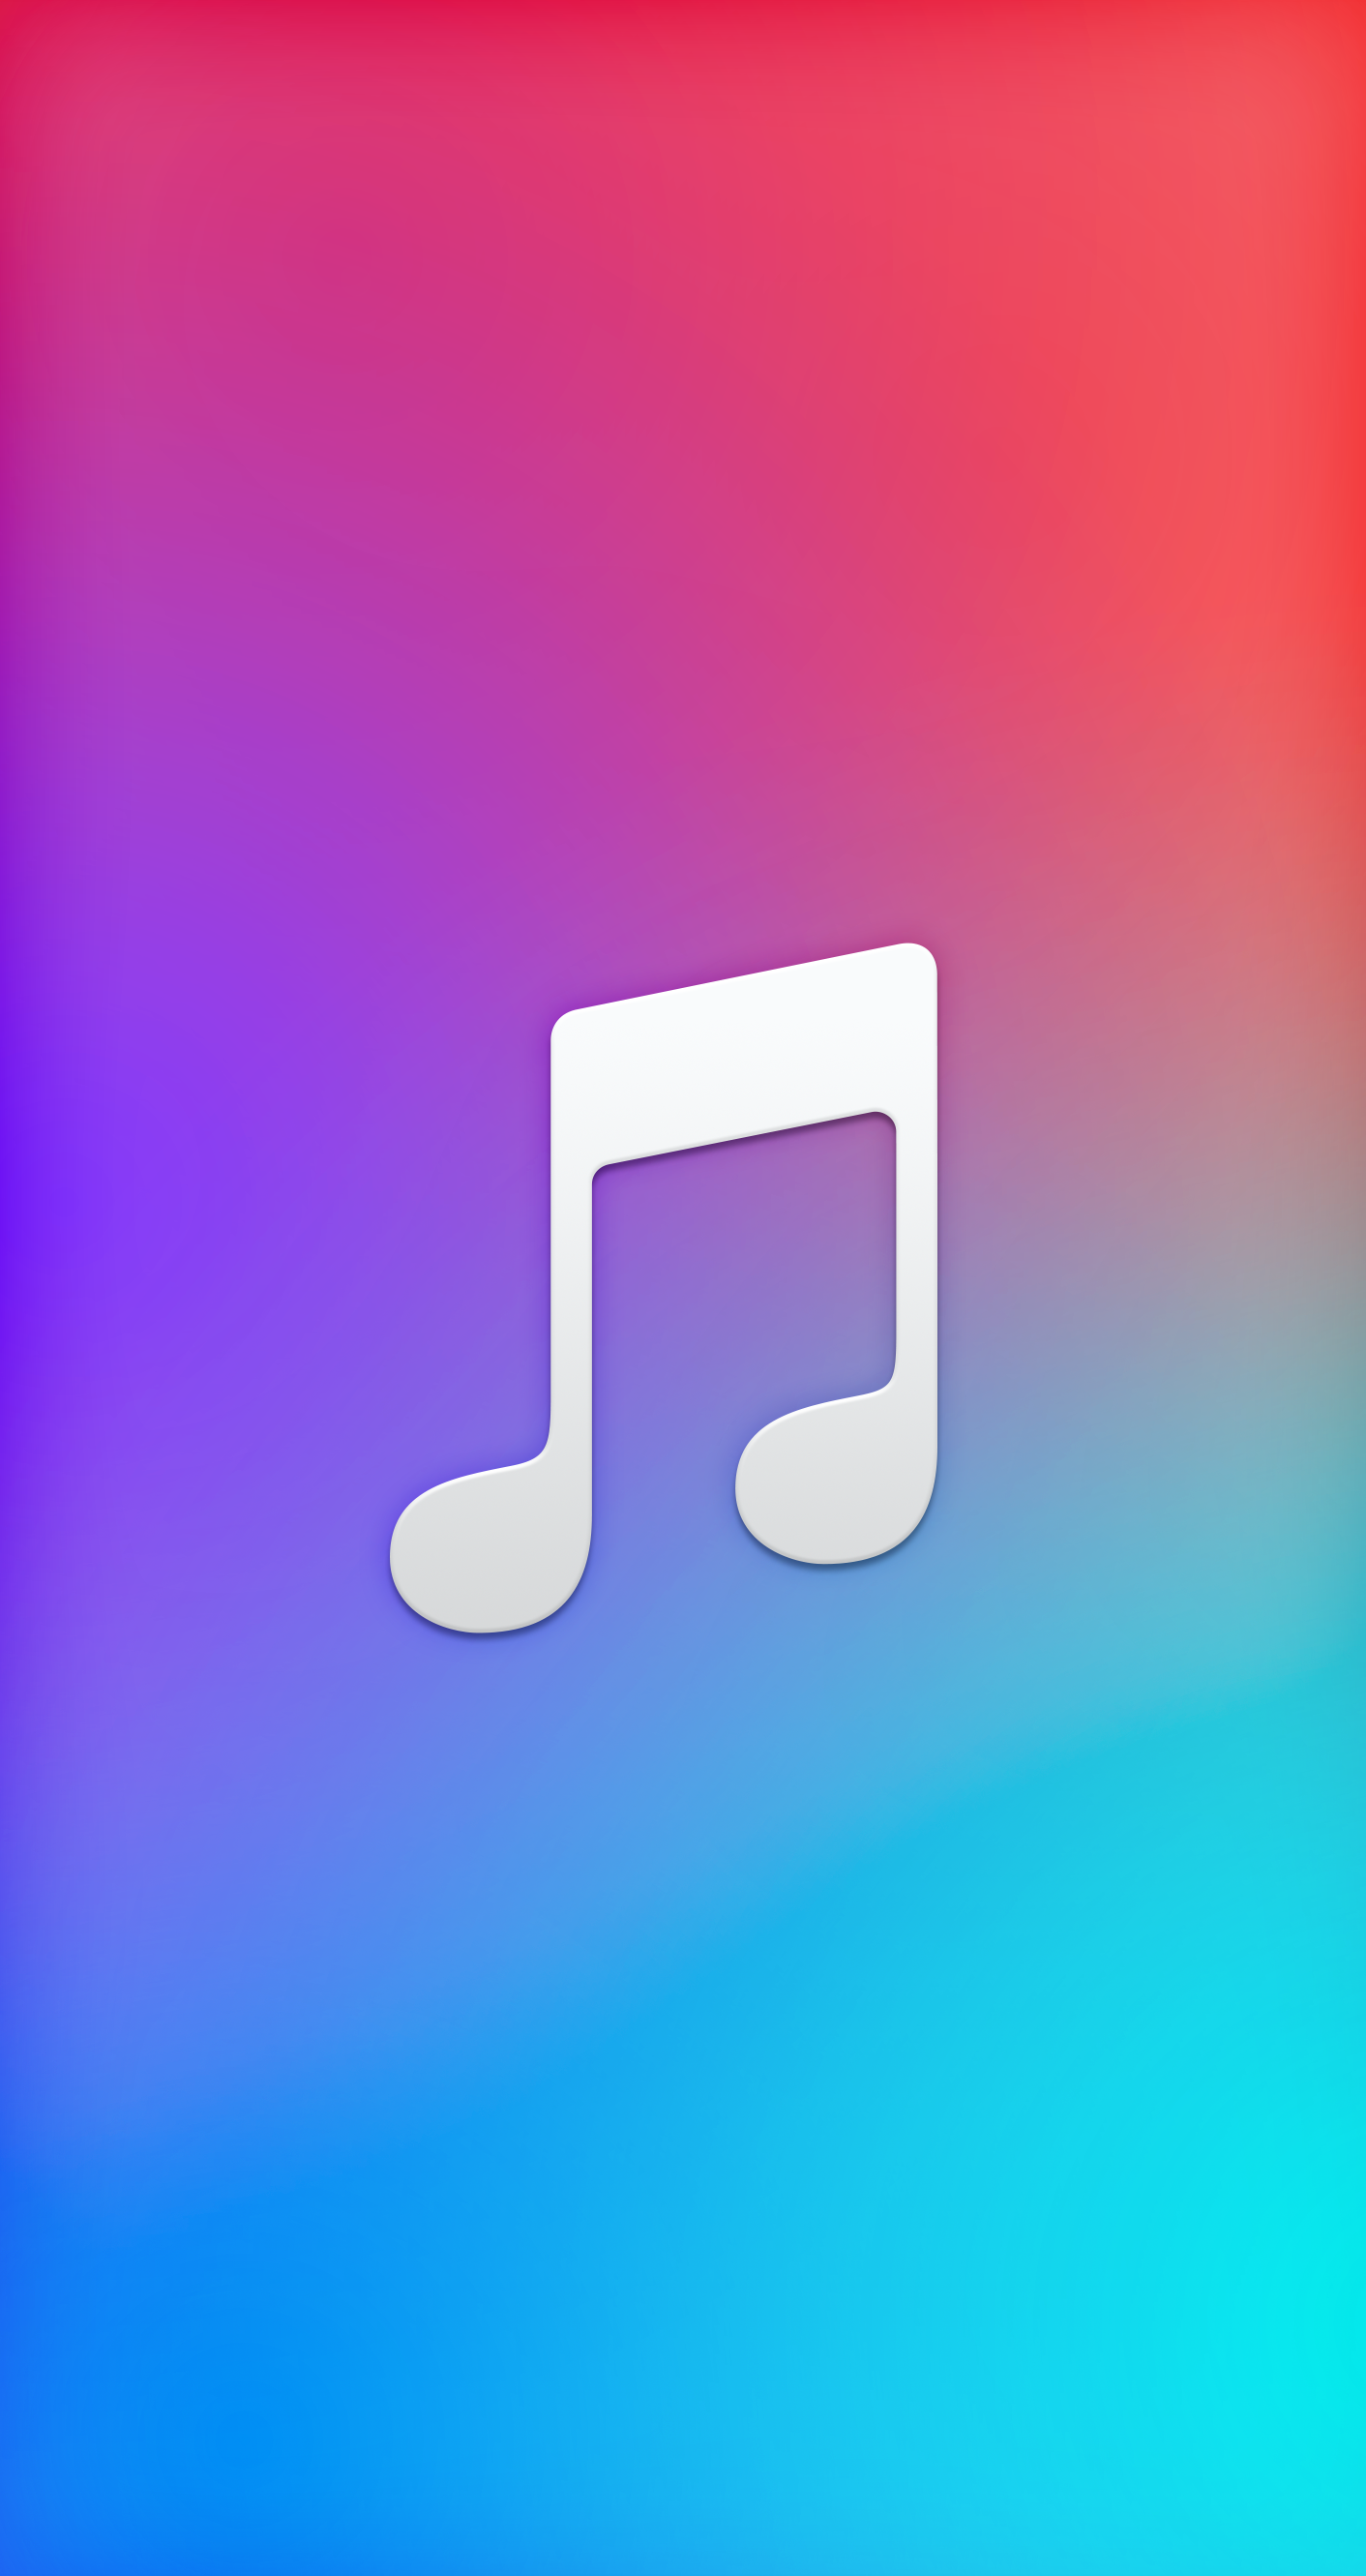 Apple Music Inspired Wallpapers For Ipad Iphone And